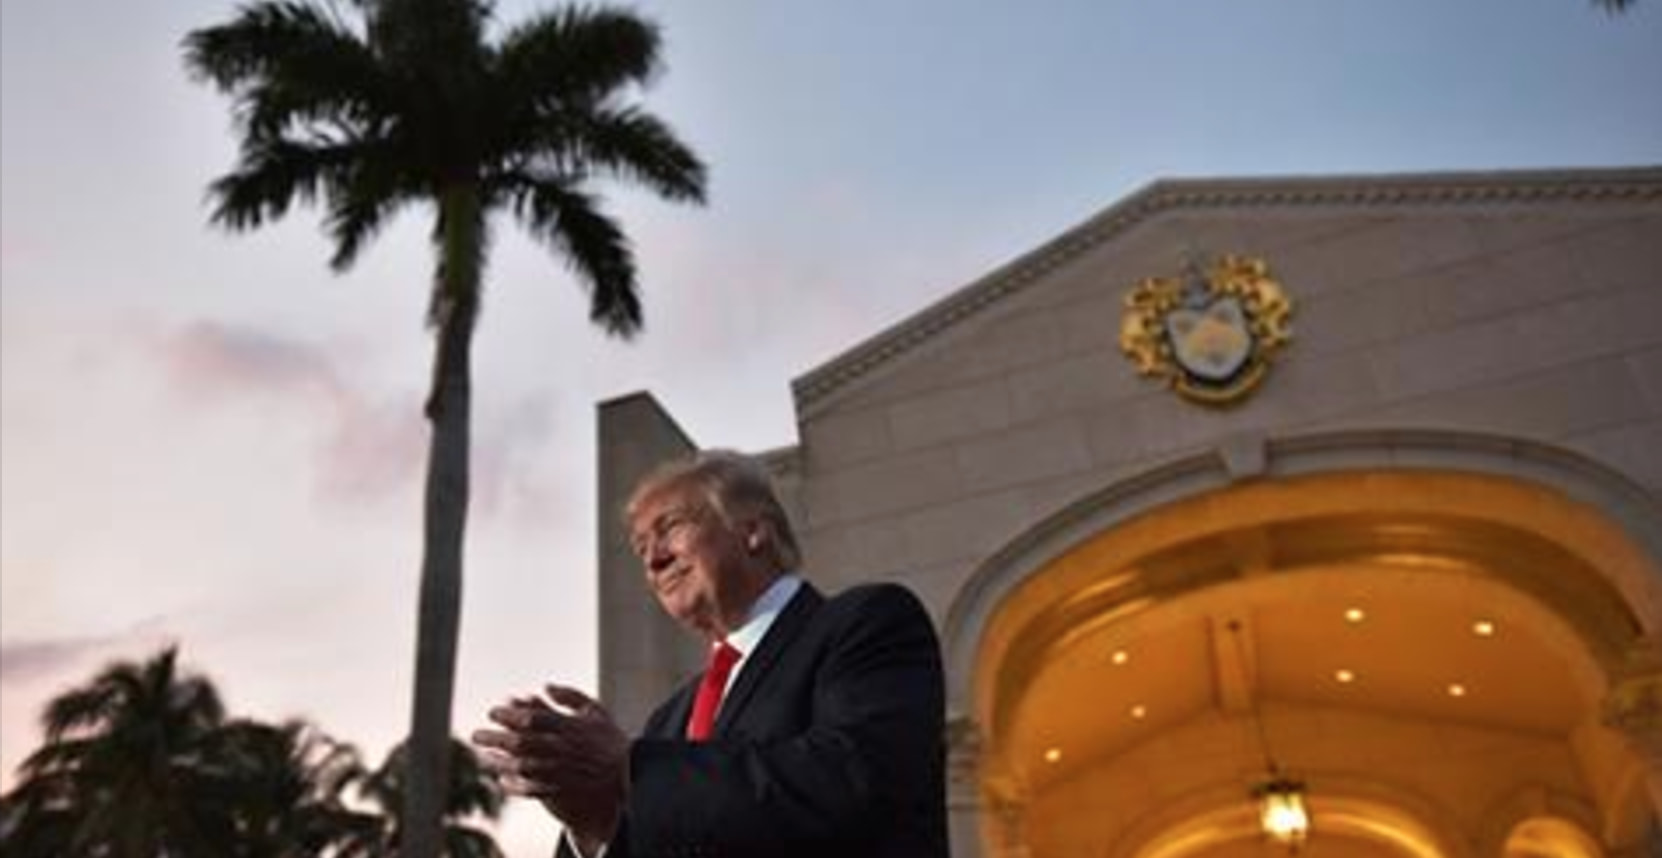 President Trump Has Been Taking Trips To Mar-A-Lago, And They've Already Cost Taxpayers $10 Million